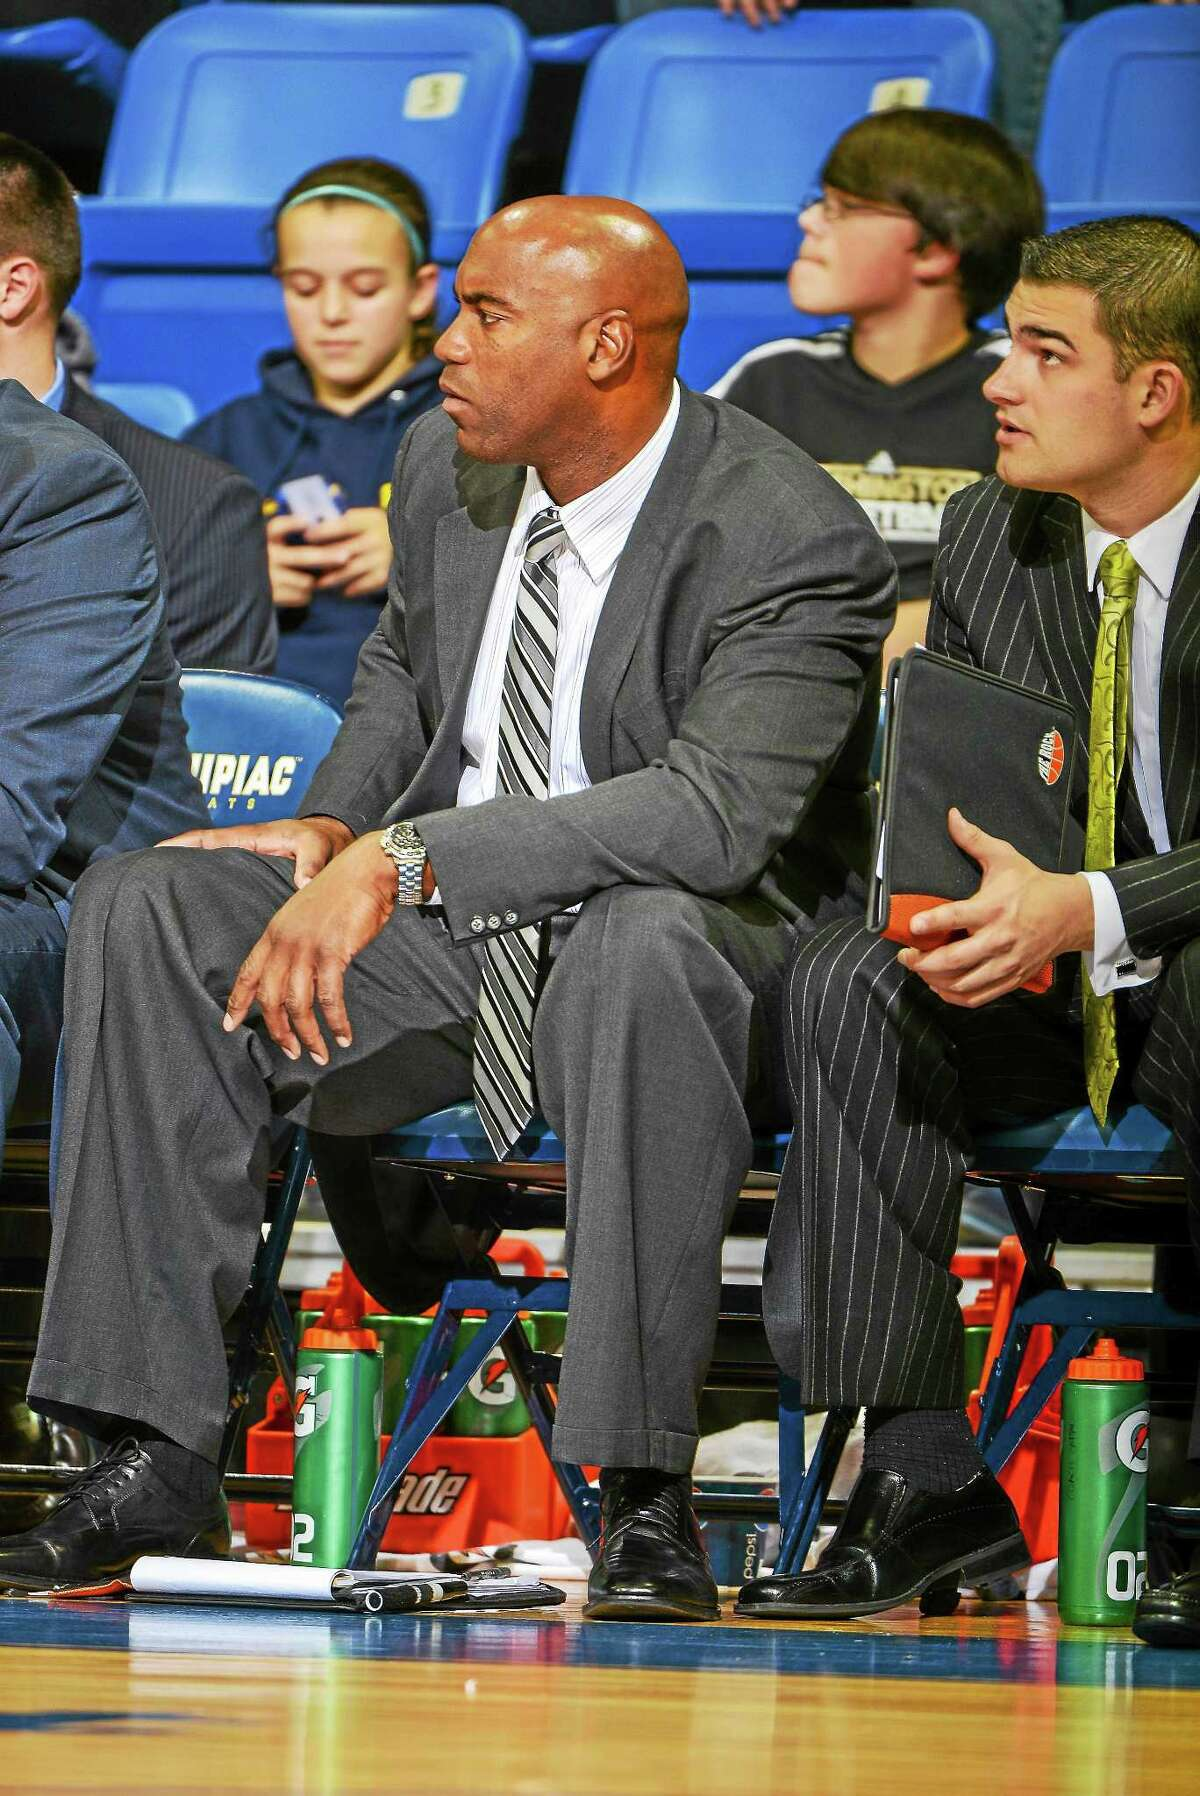 Hamden native and Quinnipiac assistant coach Scott Burrell is expected to be the next Southern Connecticut State men's basketball head coach.